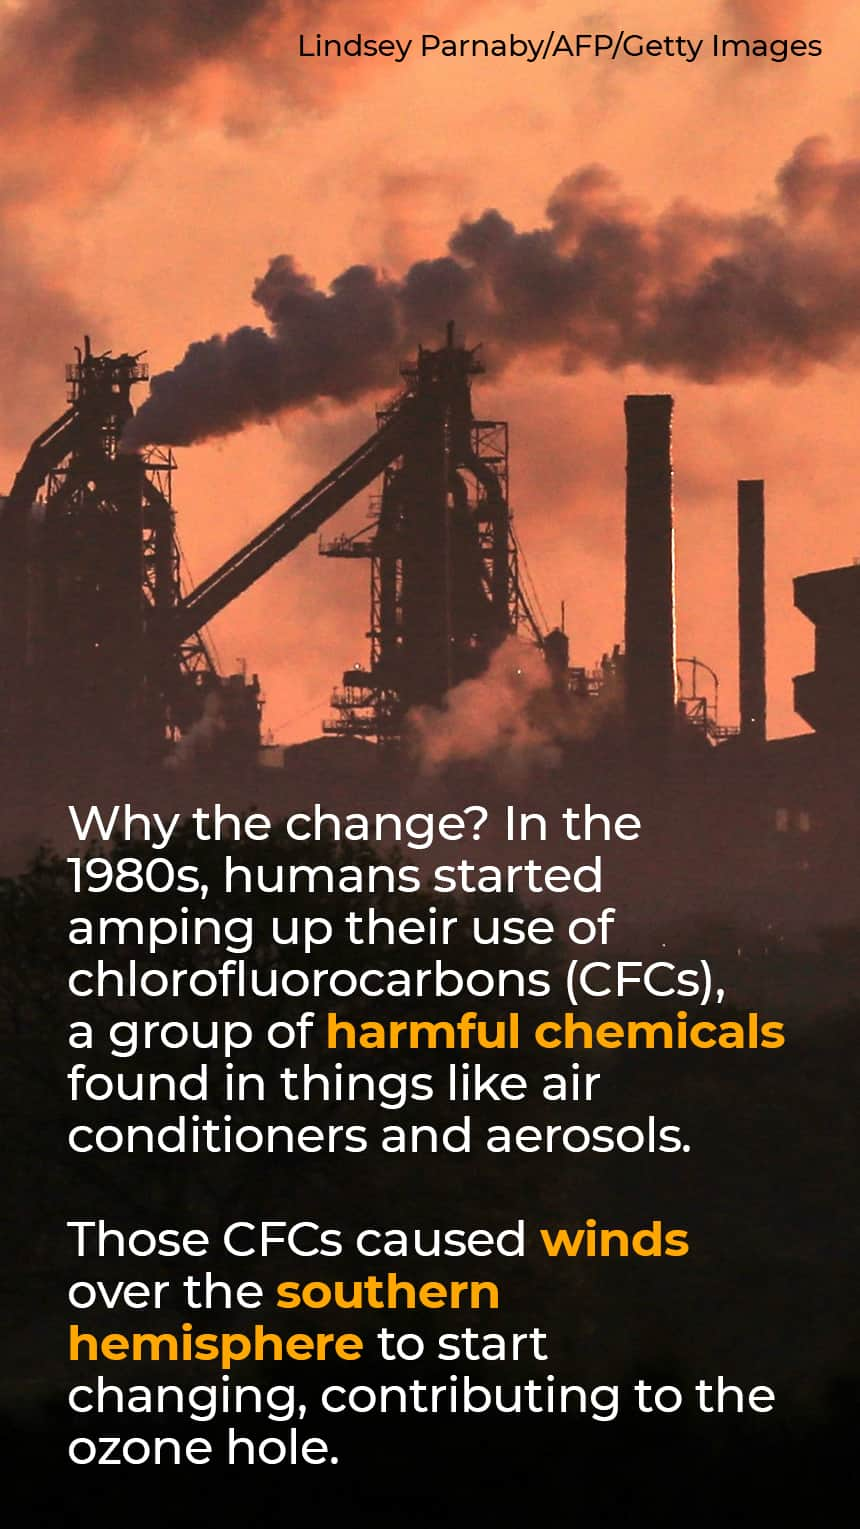 TEXT:  Why the change? In the 1980s, humans started amping up their use of chlorofluorocarbons (CFCs), a group of harmful chemicals found in things like air conditioners and aerosols.  Those CFCs caused winds over the southern hemisphere to start changing, contributing to the ozone hole.  IMAGE: Smoke stacks in the distance.